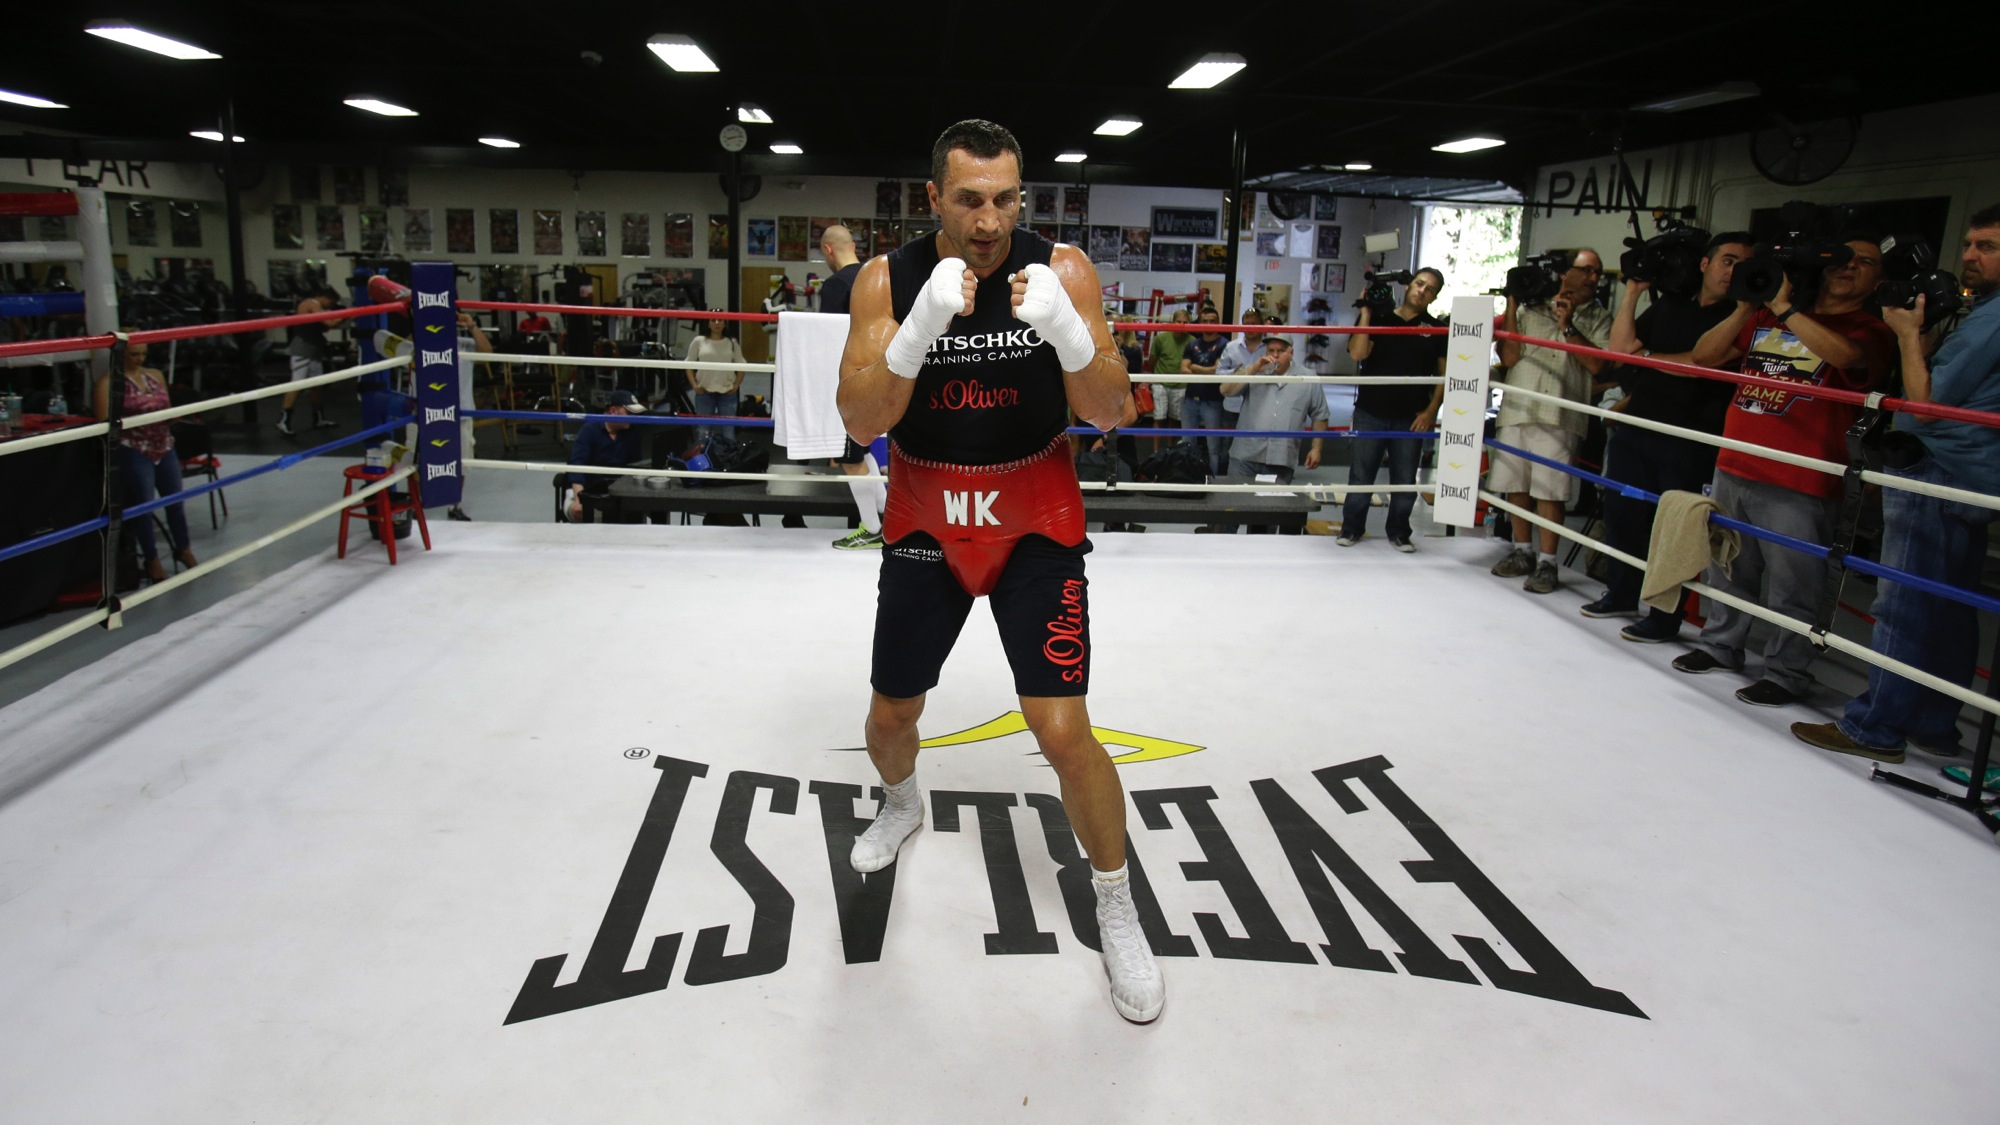 Undisputed Heavyweight World Champion boxer Wladimir Klitschko warms up in the ring during a media workout, Tuesday, April 7, 2015, in Hollywood, Fla. Klitschko will defend his WBA and IBF heavyweight titles against Bryant Jennings on April 25 at Madison Square Garden.